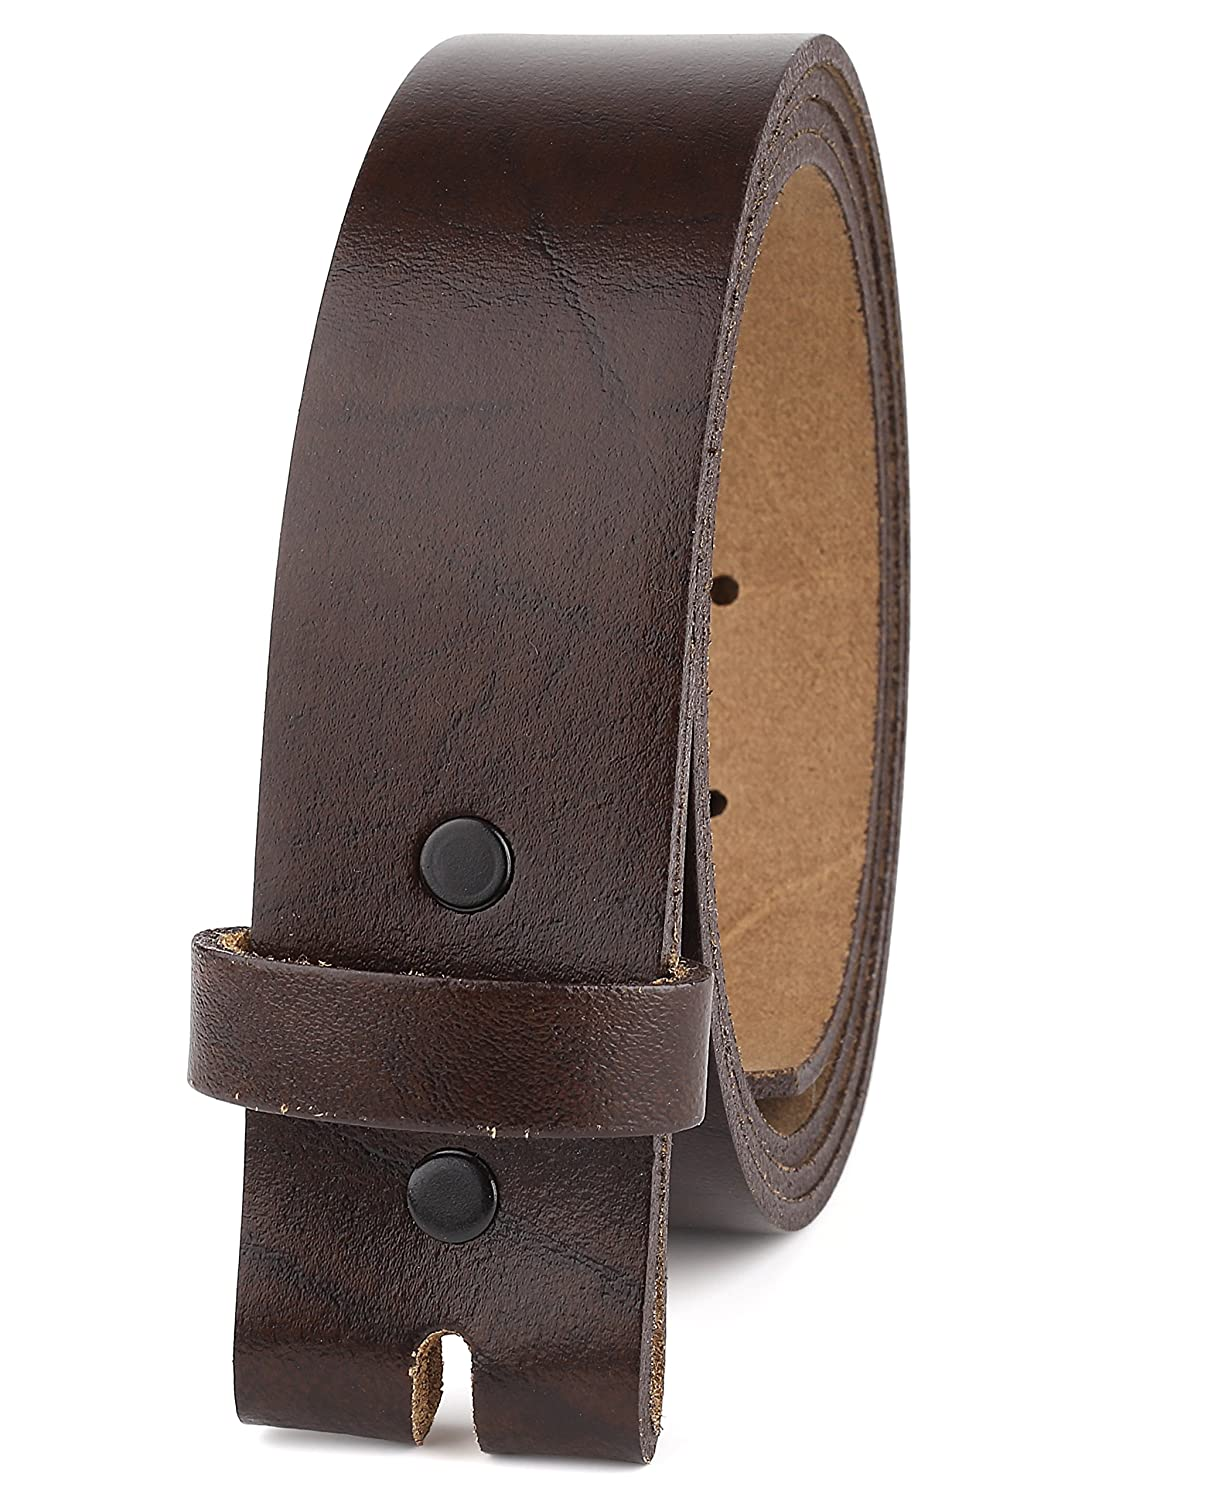 Belt for Buckles 100% Top Grain One Piece Leather,up to Size 62, 1-1/2' Wide, Made in USA… 1-1/2 Wide